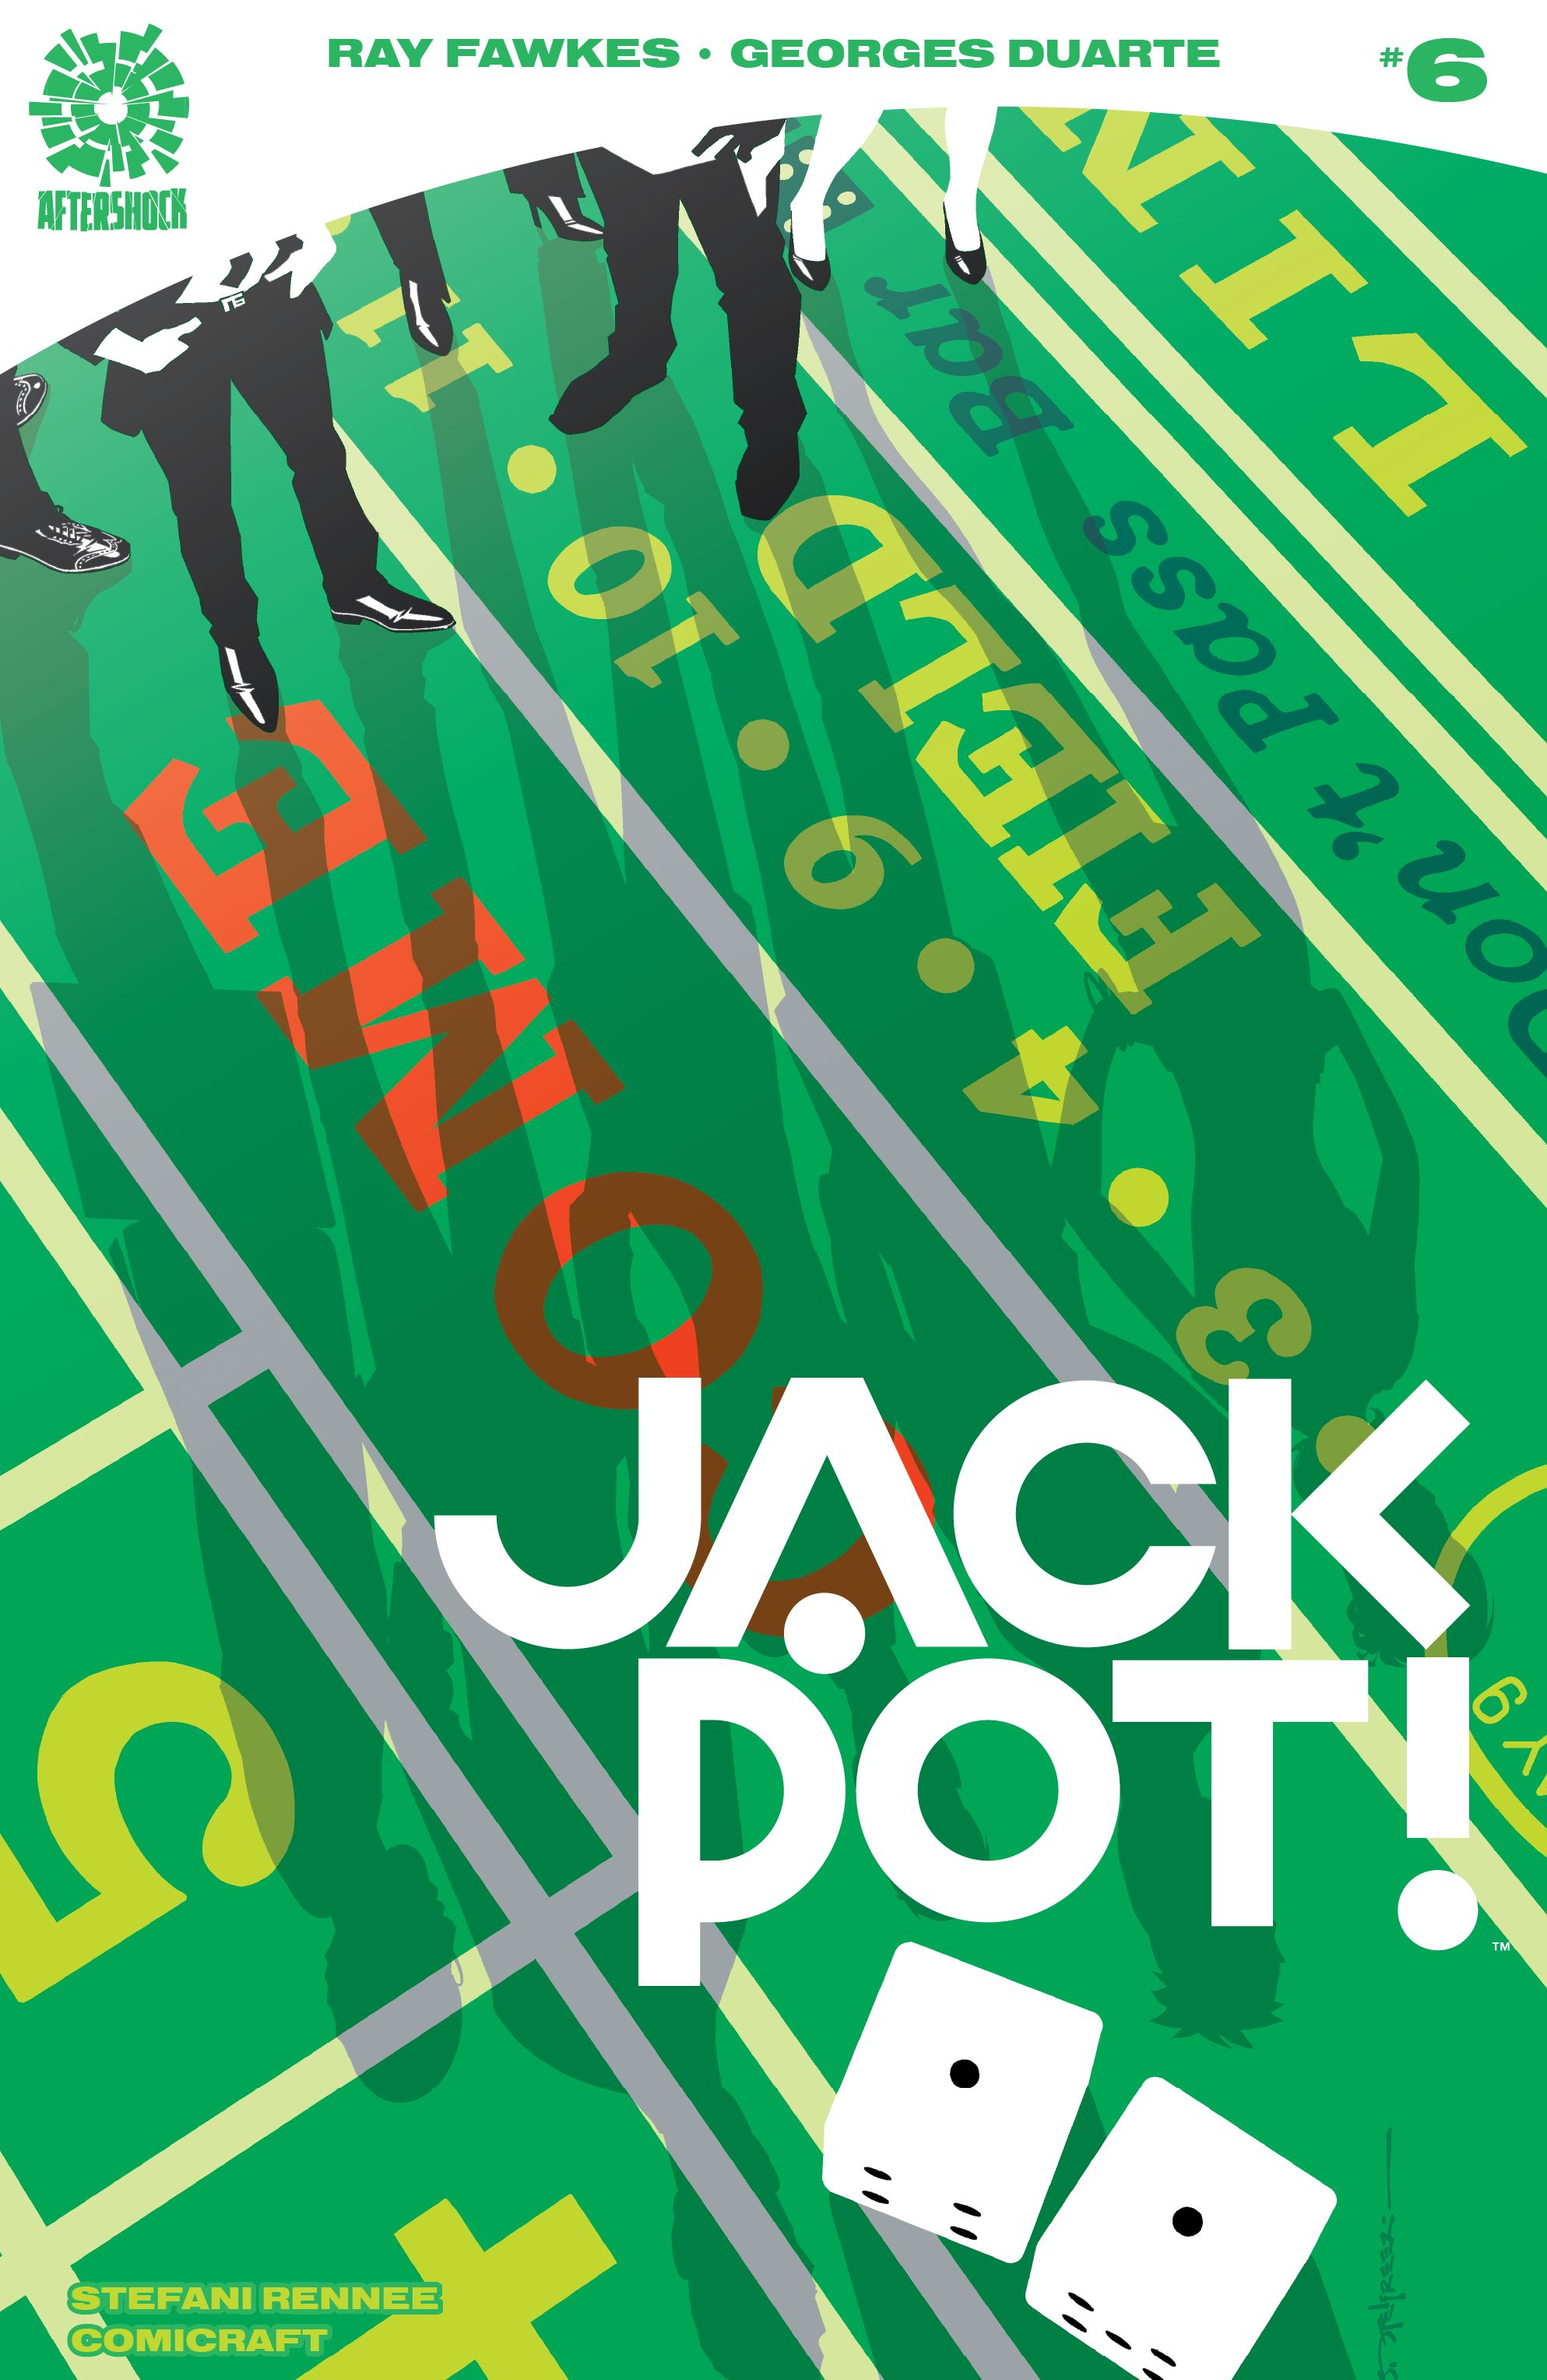 Read online Jackpot! comic -  Issue #6 - 1